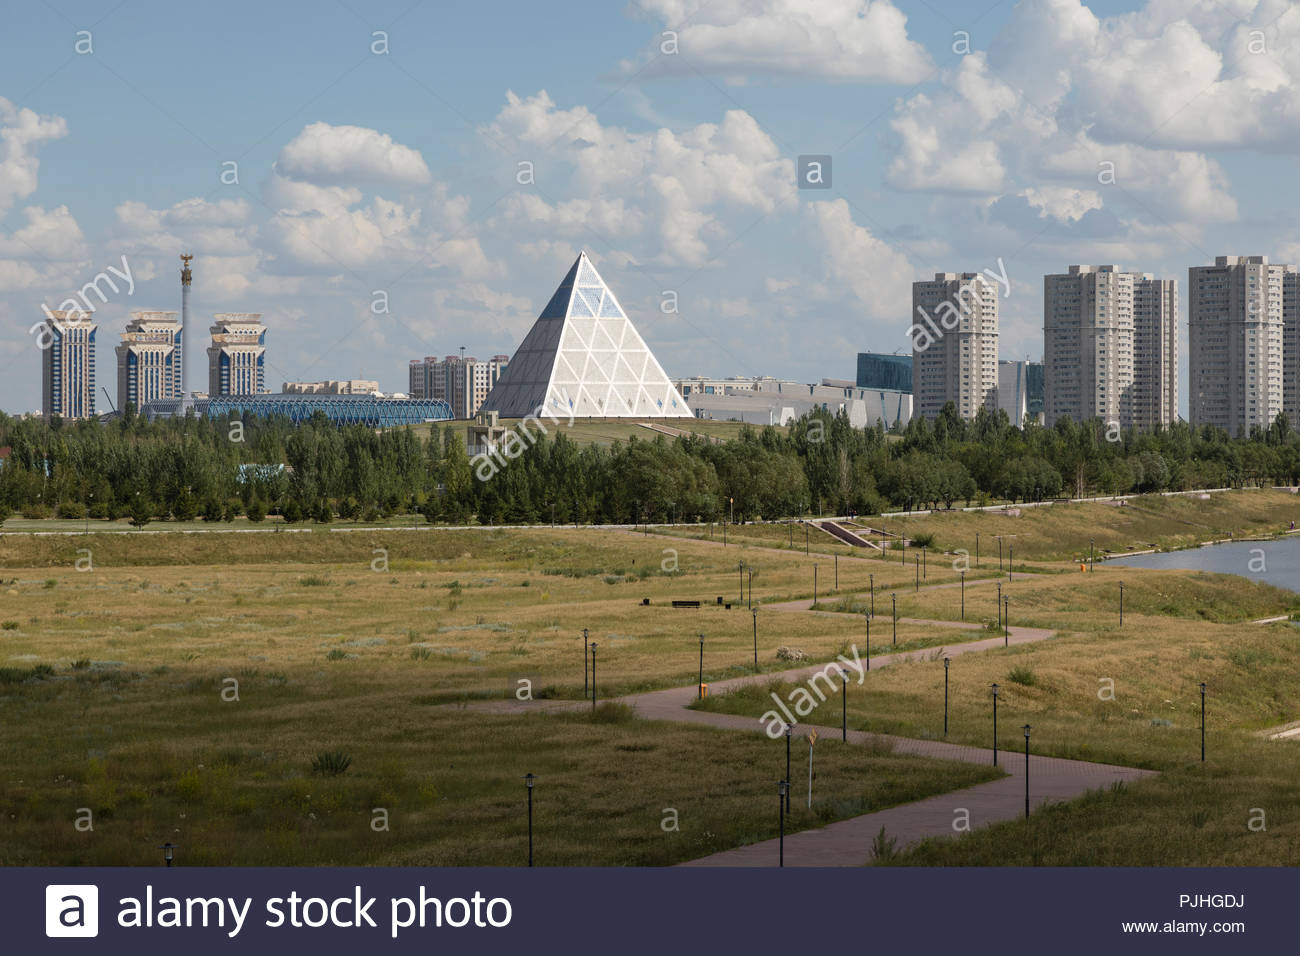 Shore of the Yesil River in Astana with the Palace of Peace and 1300x956